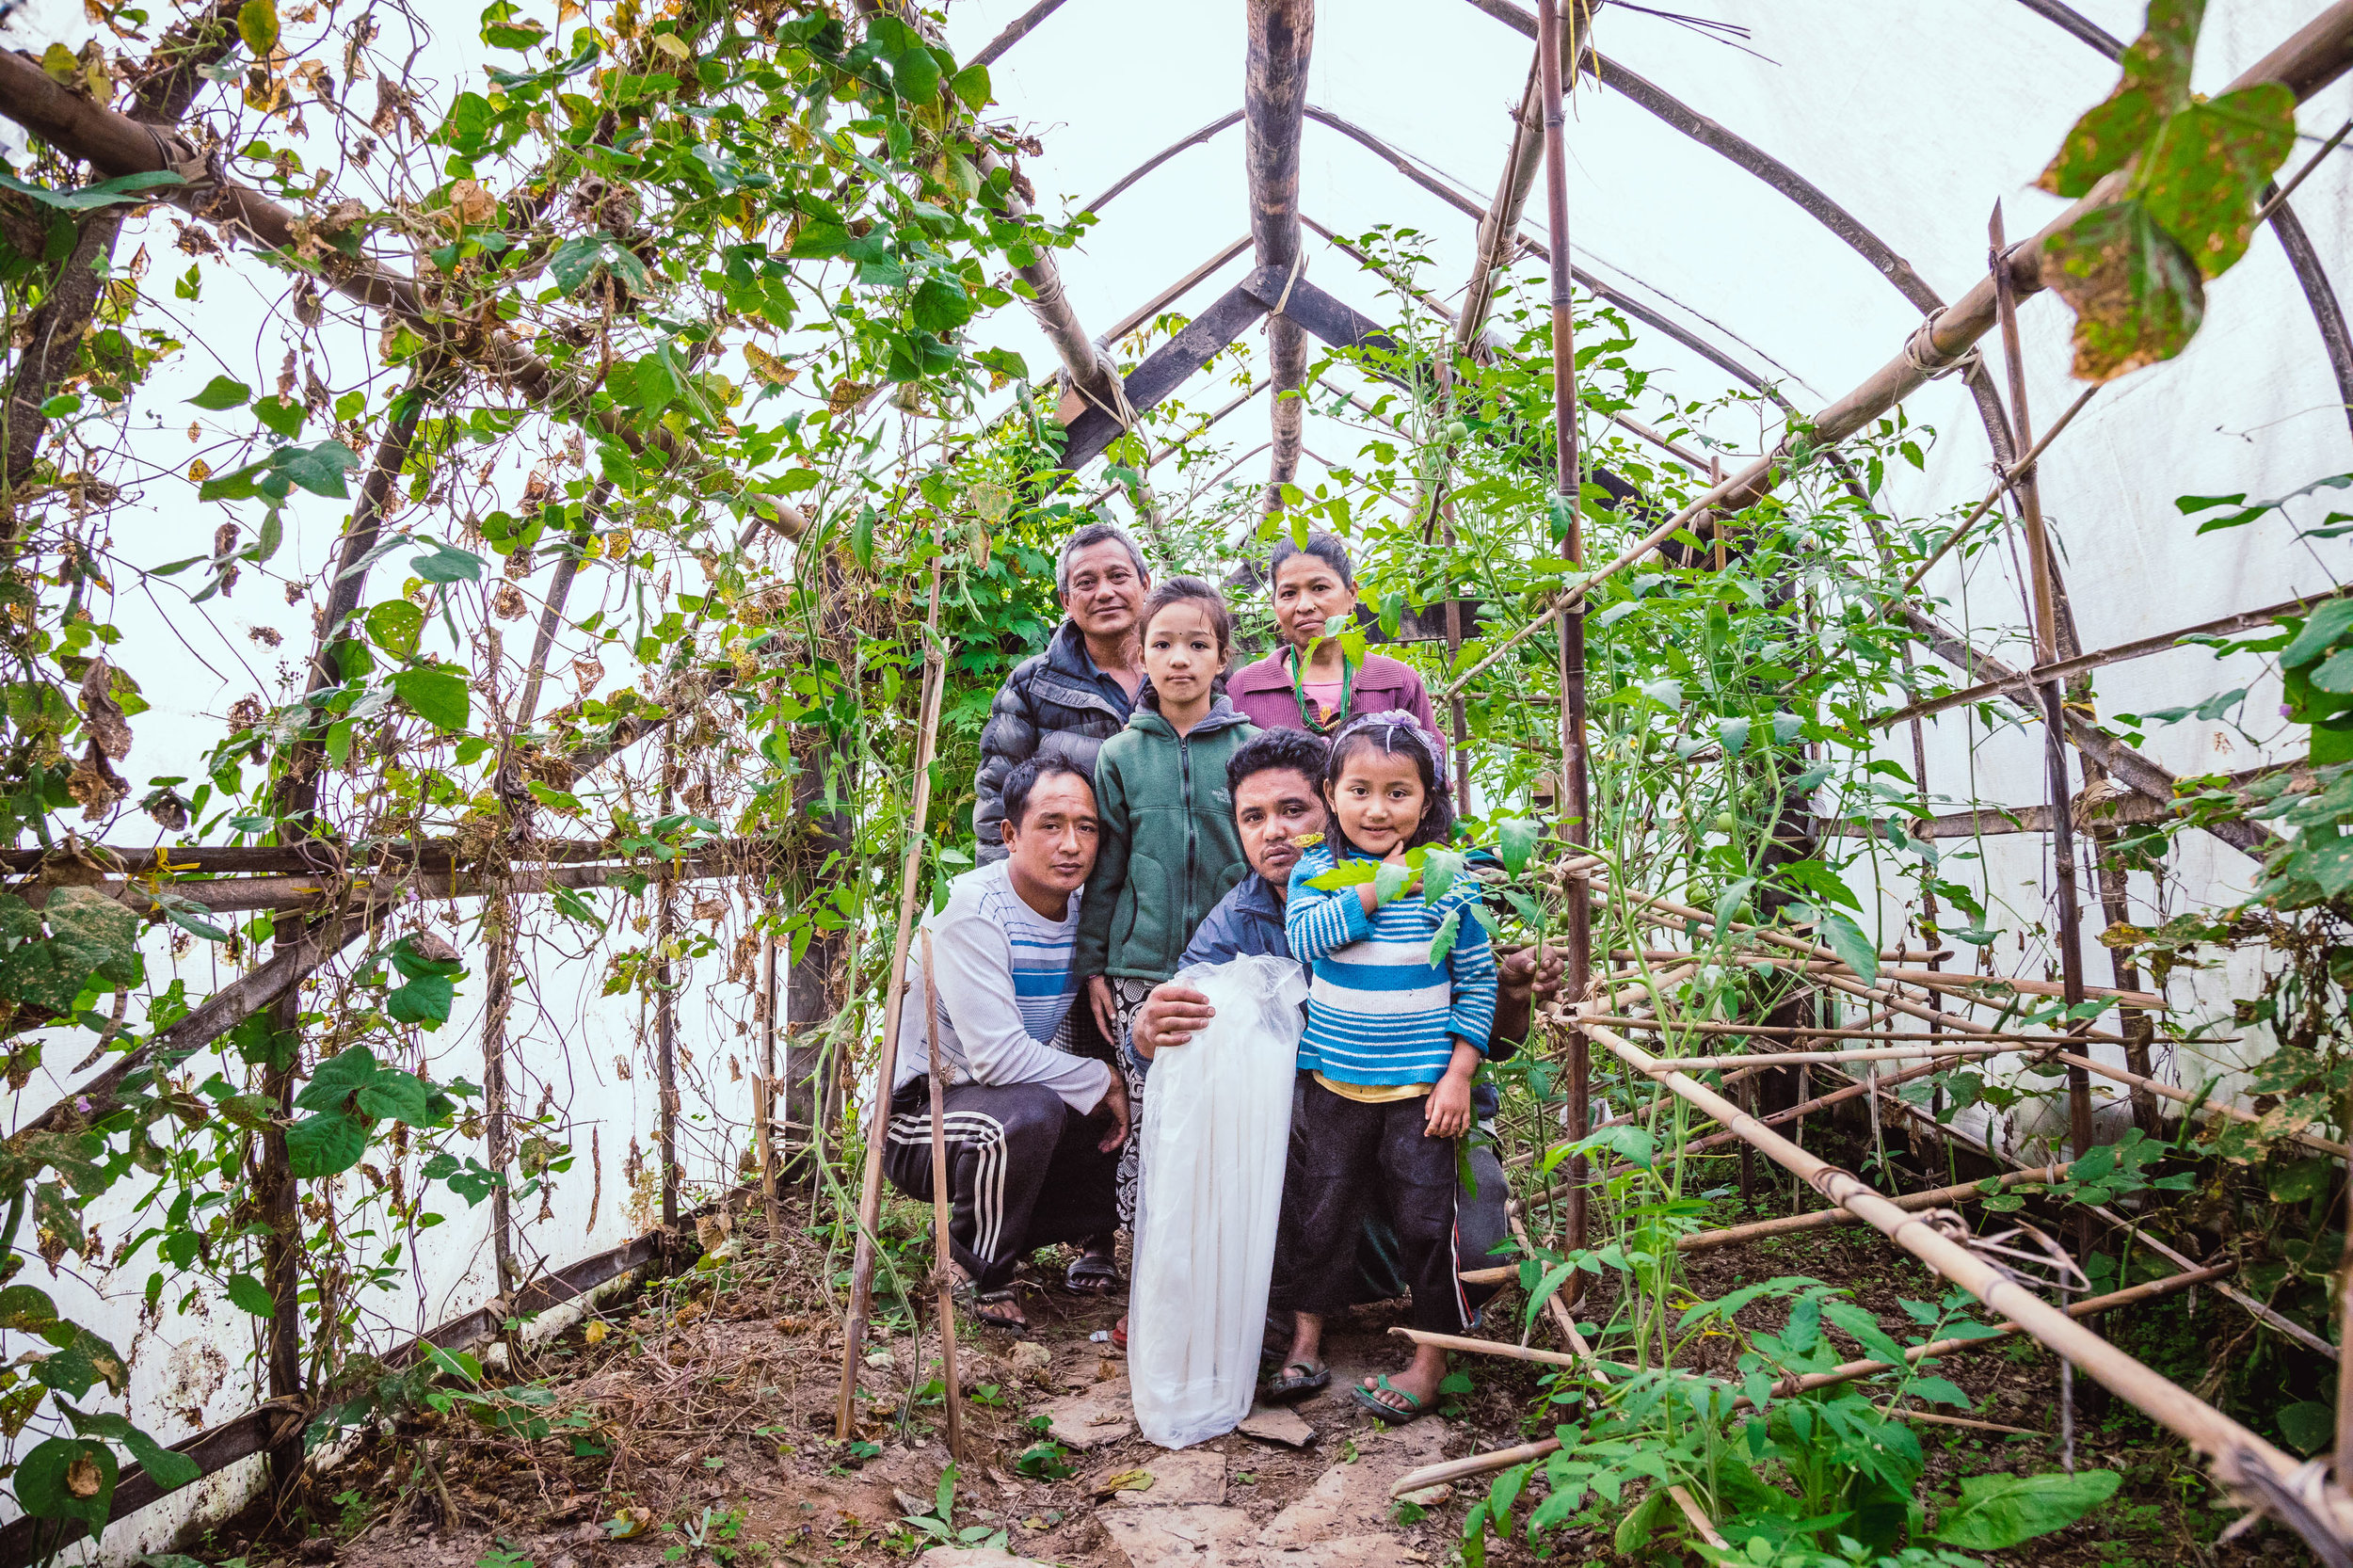 Familie that we visited in Solu district. All members are working time by time in the greenhouse and are grateful we gave them this opportunity.